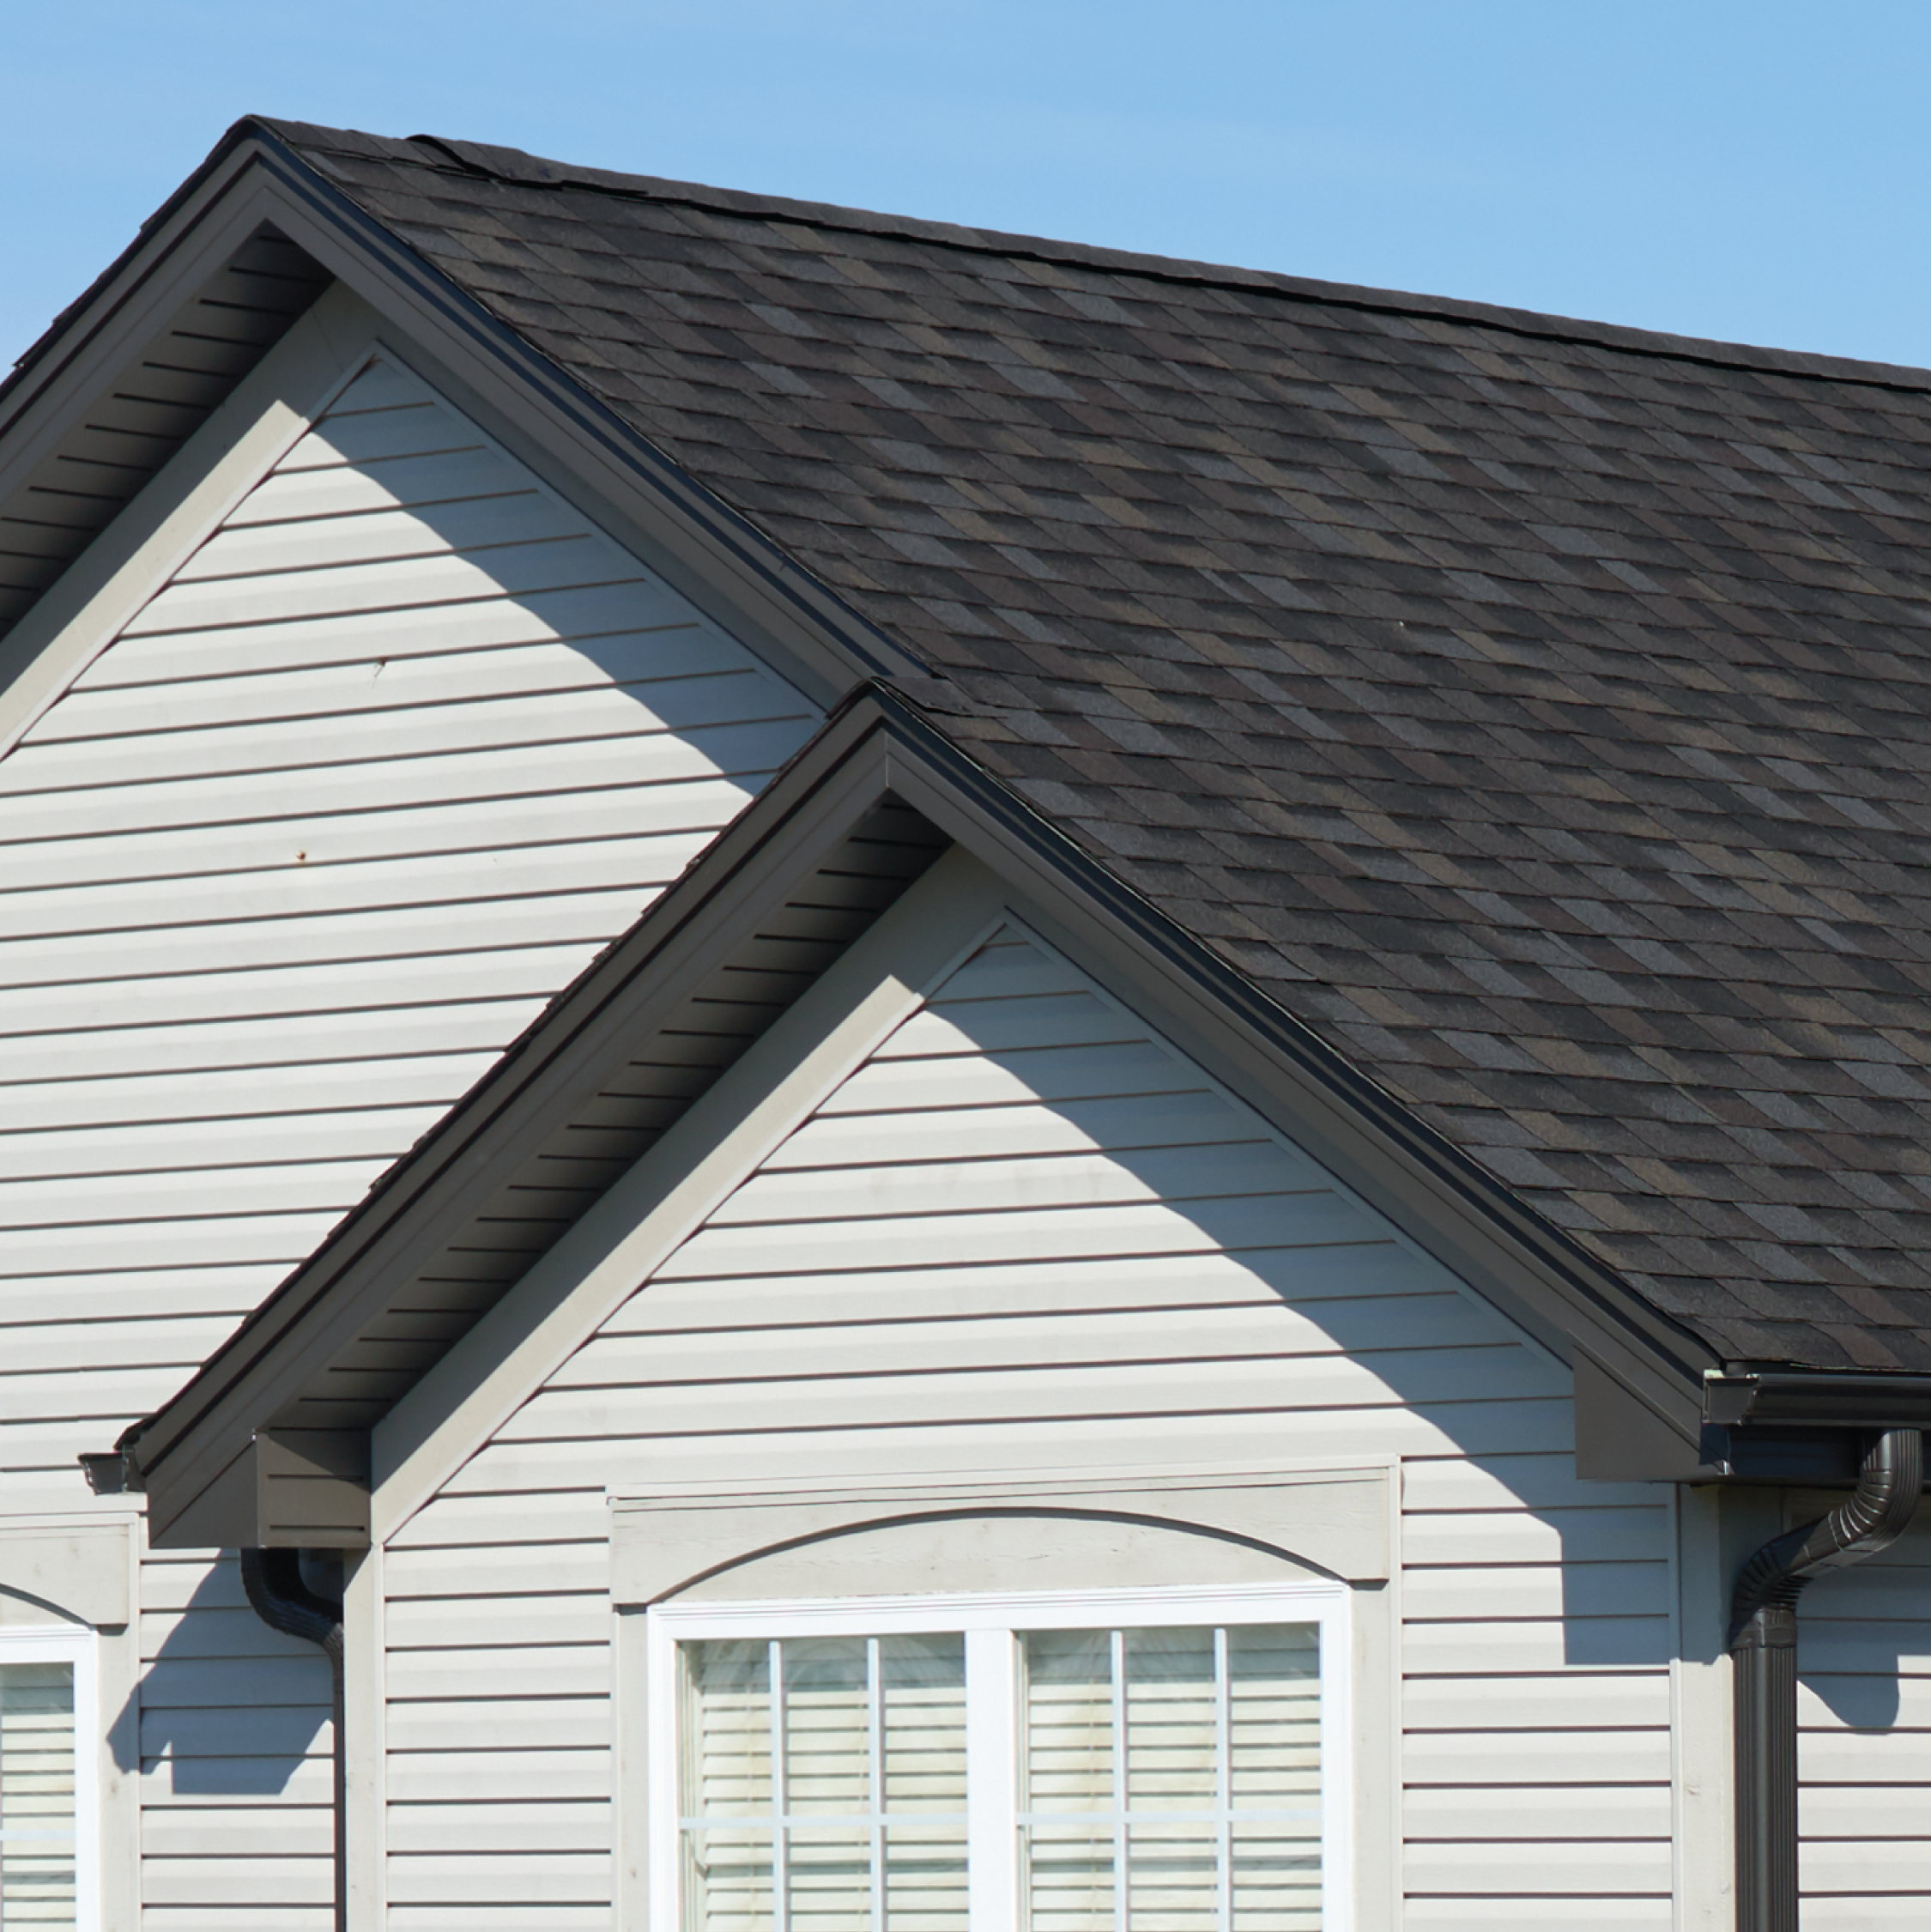 Iko Dynasty Glacier Roof In 2020 Roof Shingles Architectural Shingles Residential Roofing Shingles